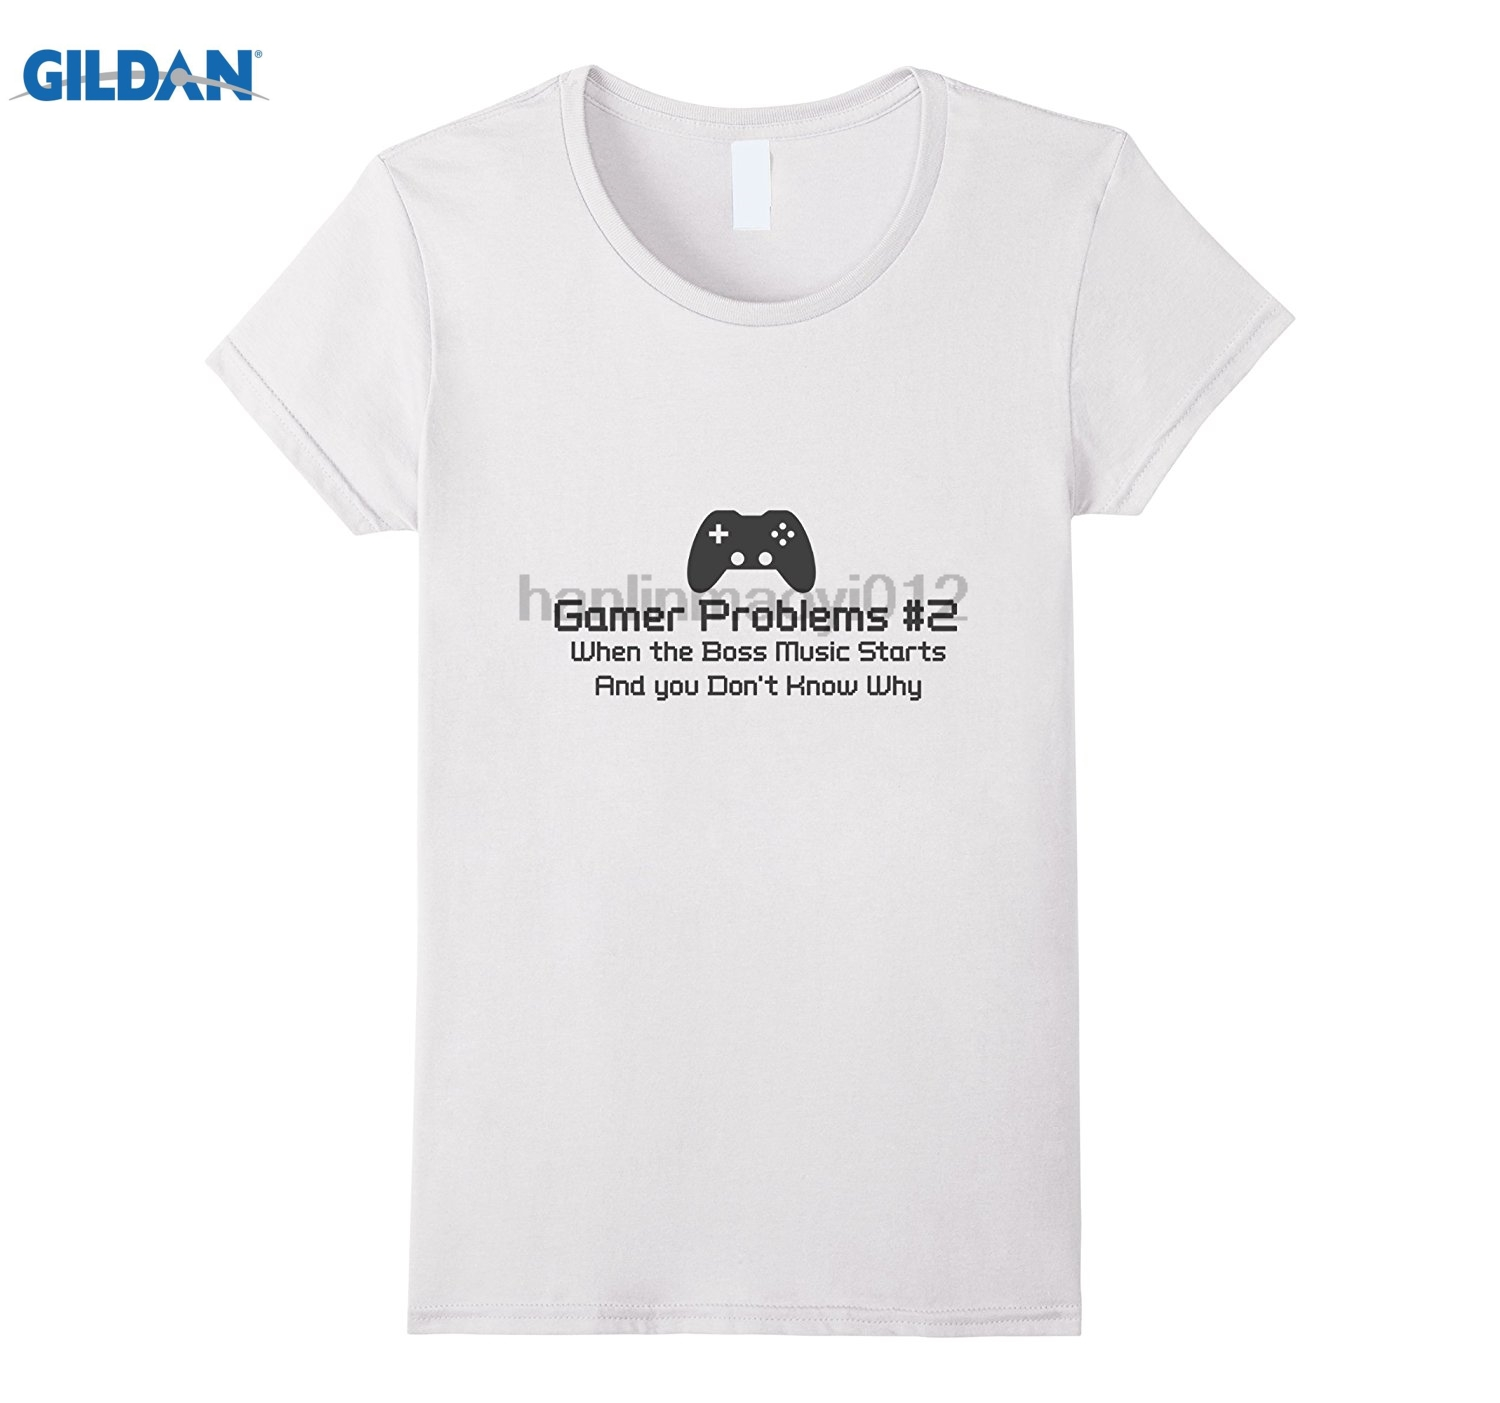 GILDAN Gamer Problems #2 Funny Gaming T-Shirt 100% cotton T-shirt glasses Womens T-shirt ...